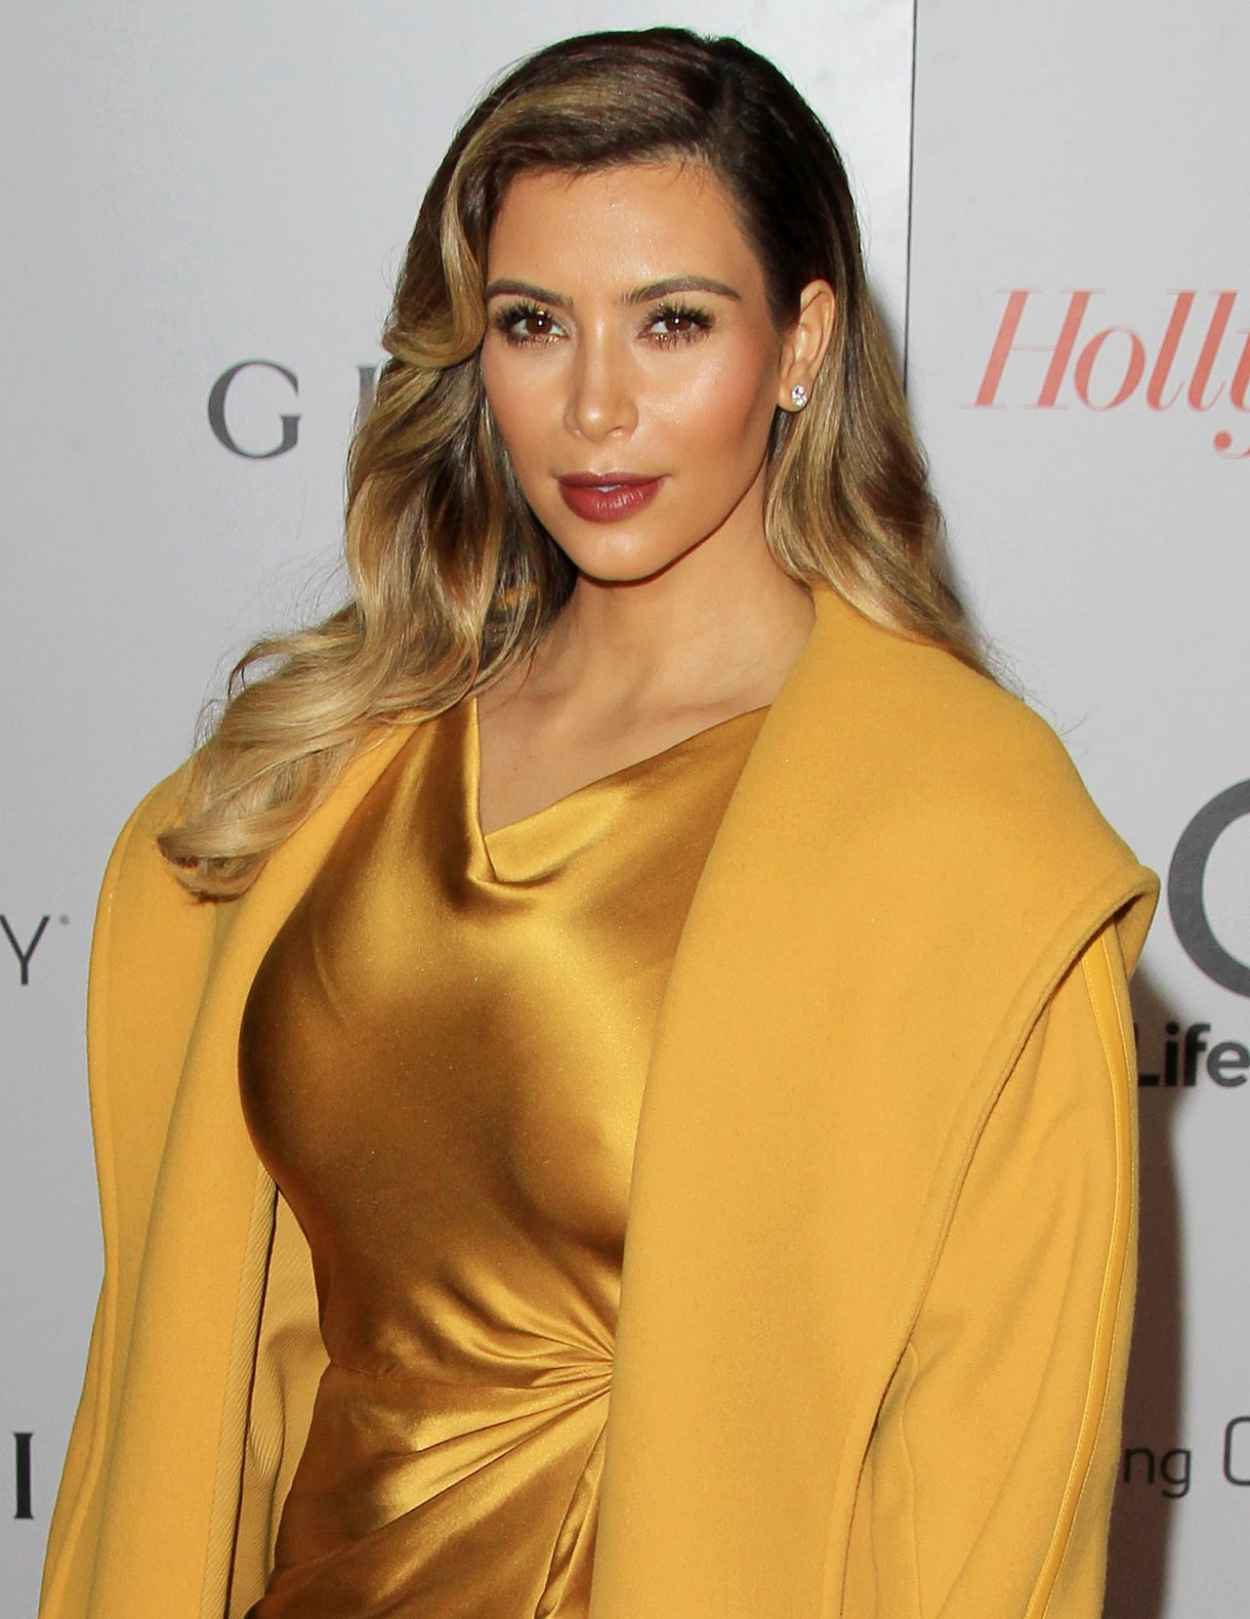 Kim Kardashian Lights Up The Red Carpet In Yellow - THRs 22nd Women in Entertainment Breakfast in Beverly Hills - Dec. 2015-1